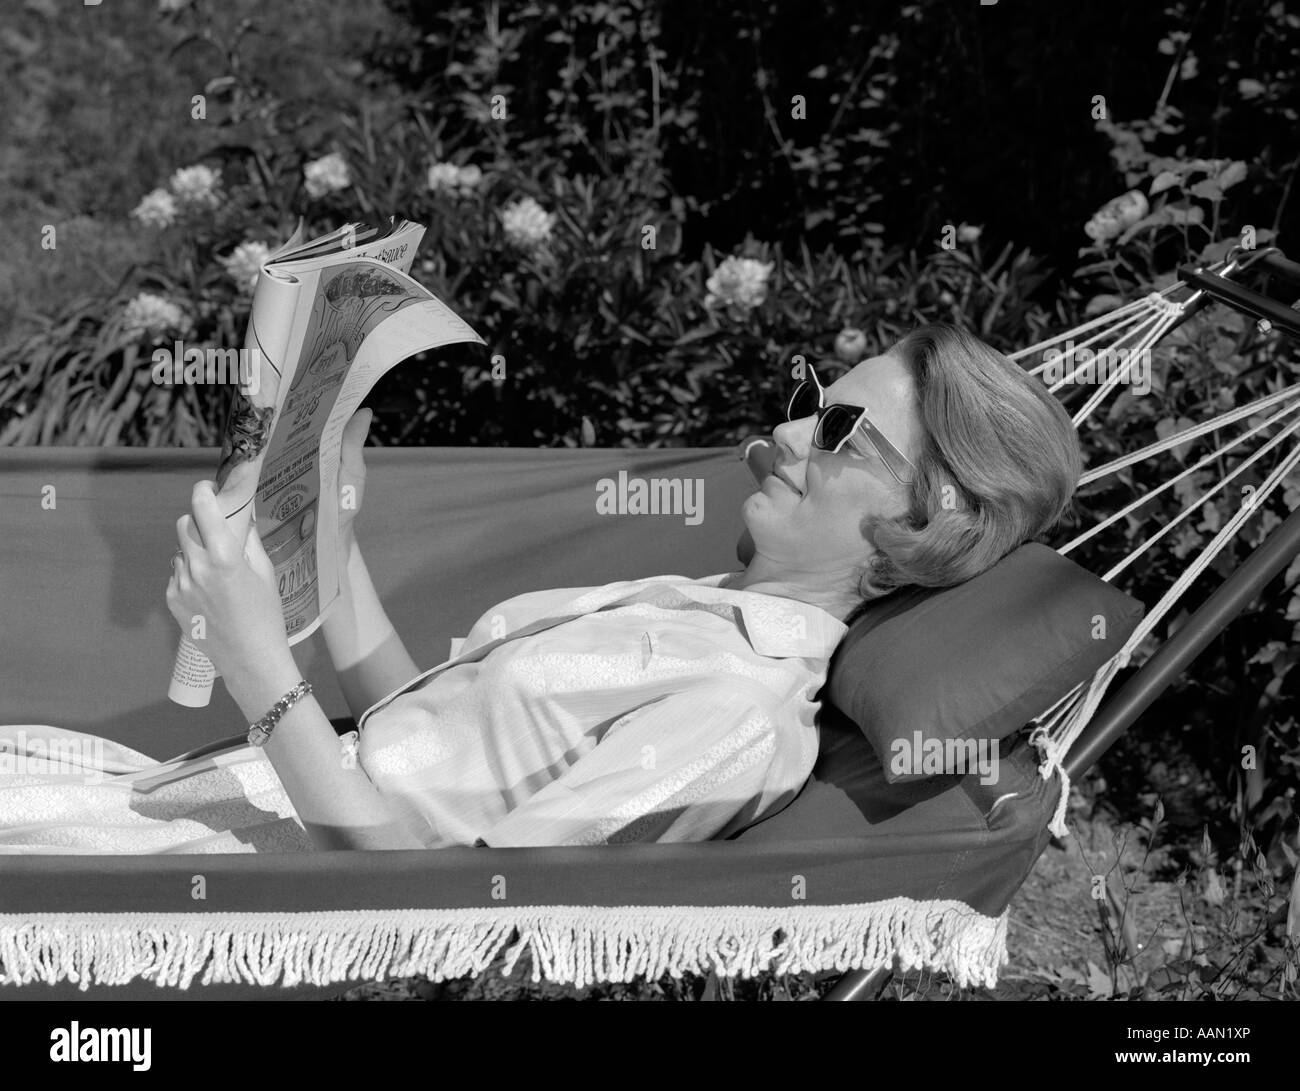 1960s SIDE VIEW OF WOMAN WEARING SUNGLASSES LYING IN FRINGED HAMMOCK READING MAGAZINE - Stock Image